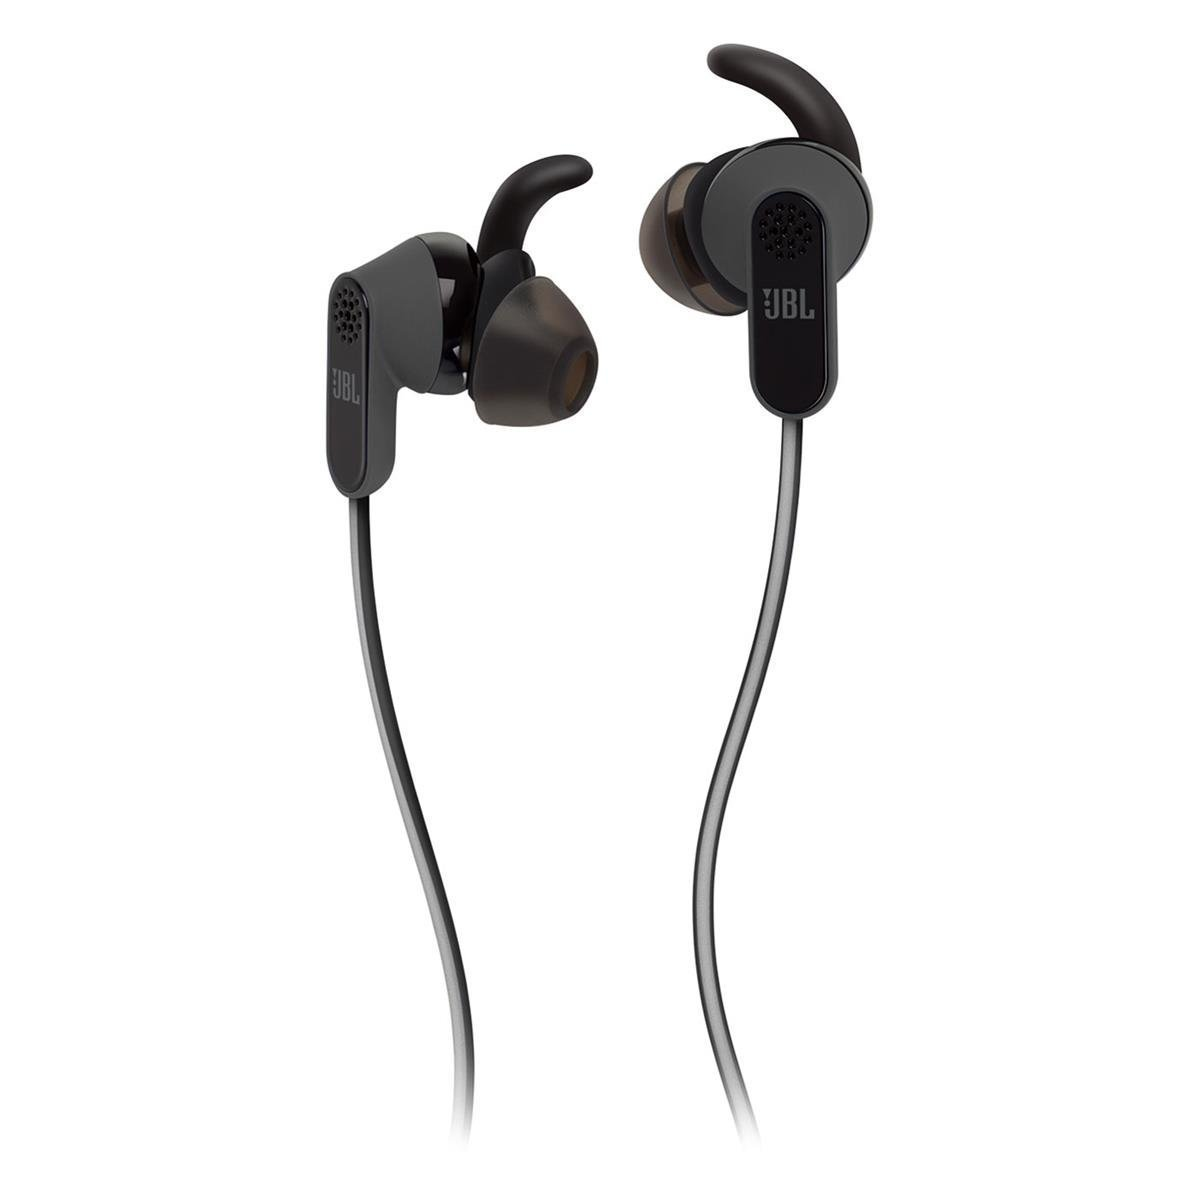 Image for JBL Reflect Aware in-ear sport headphones with lightning - Black from Circuit City